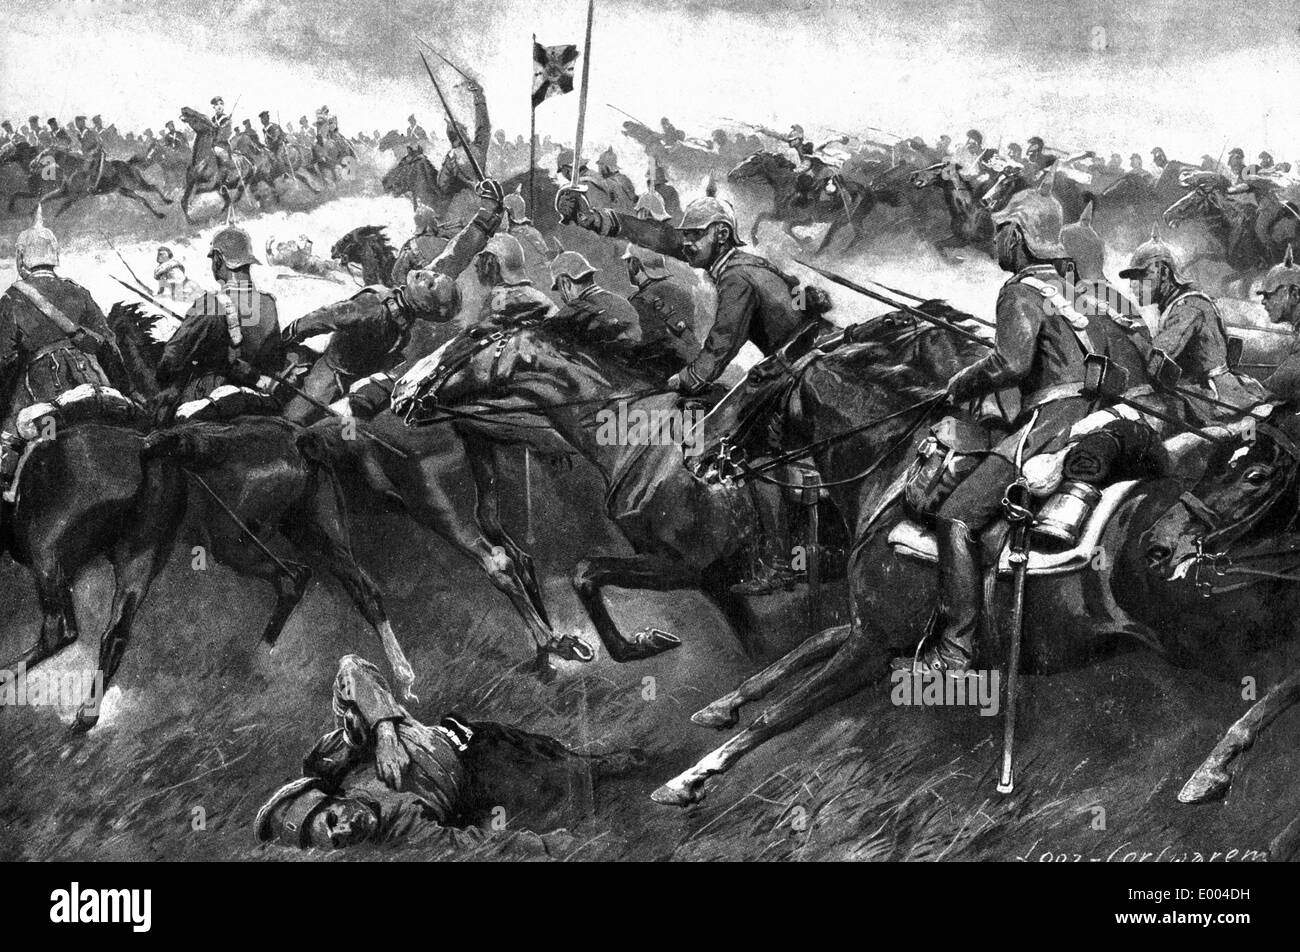 German and Austro-Hungarian cavalry, 1914 - Stock Image